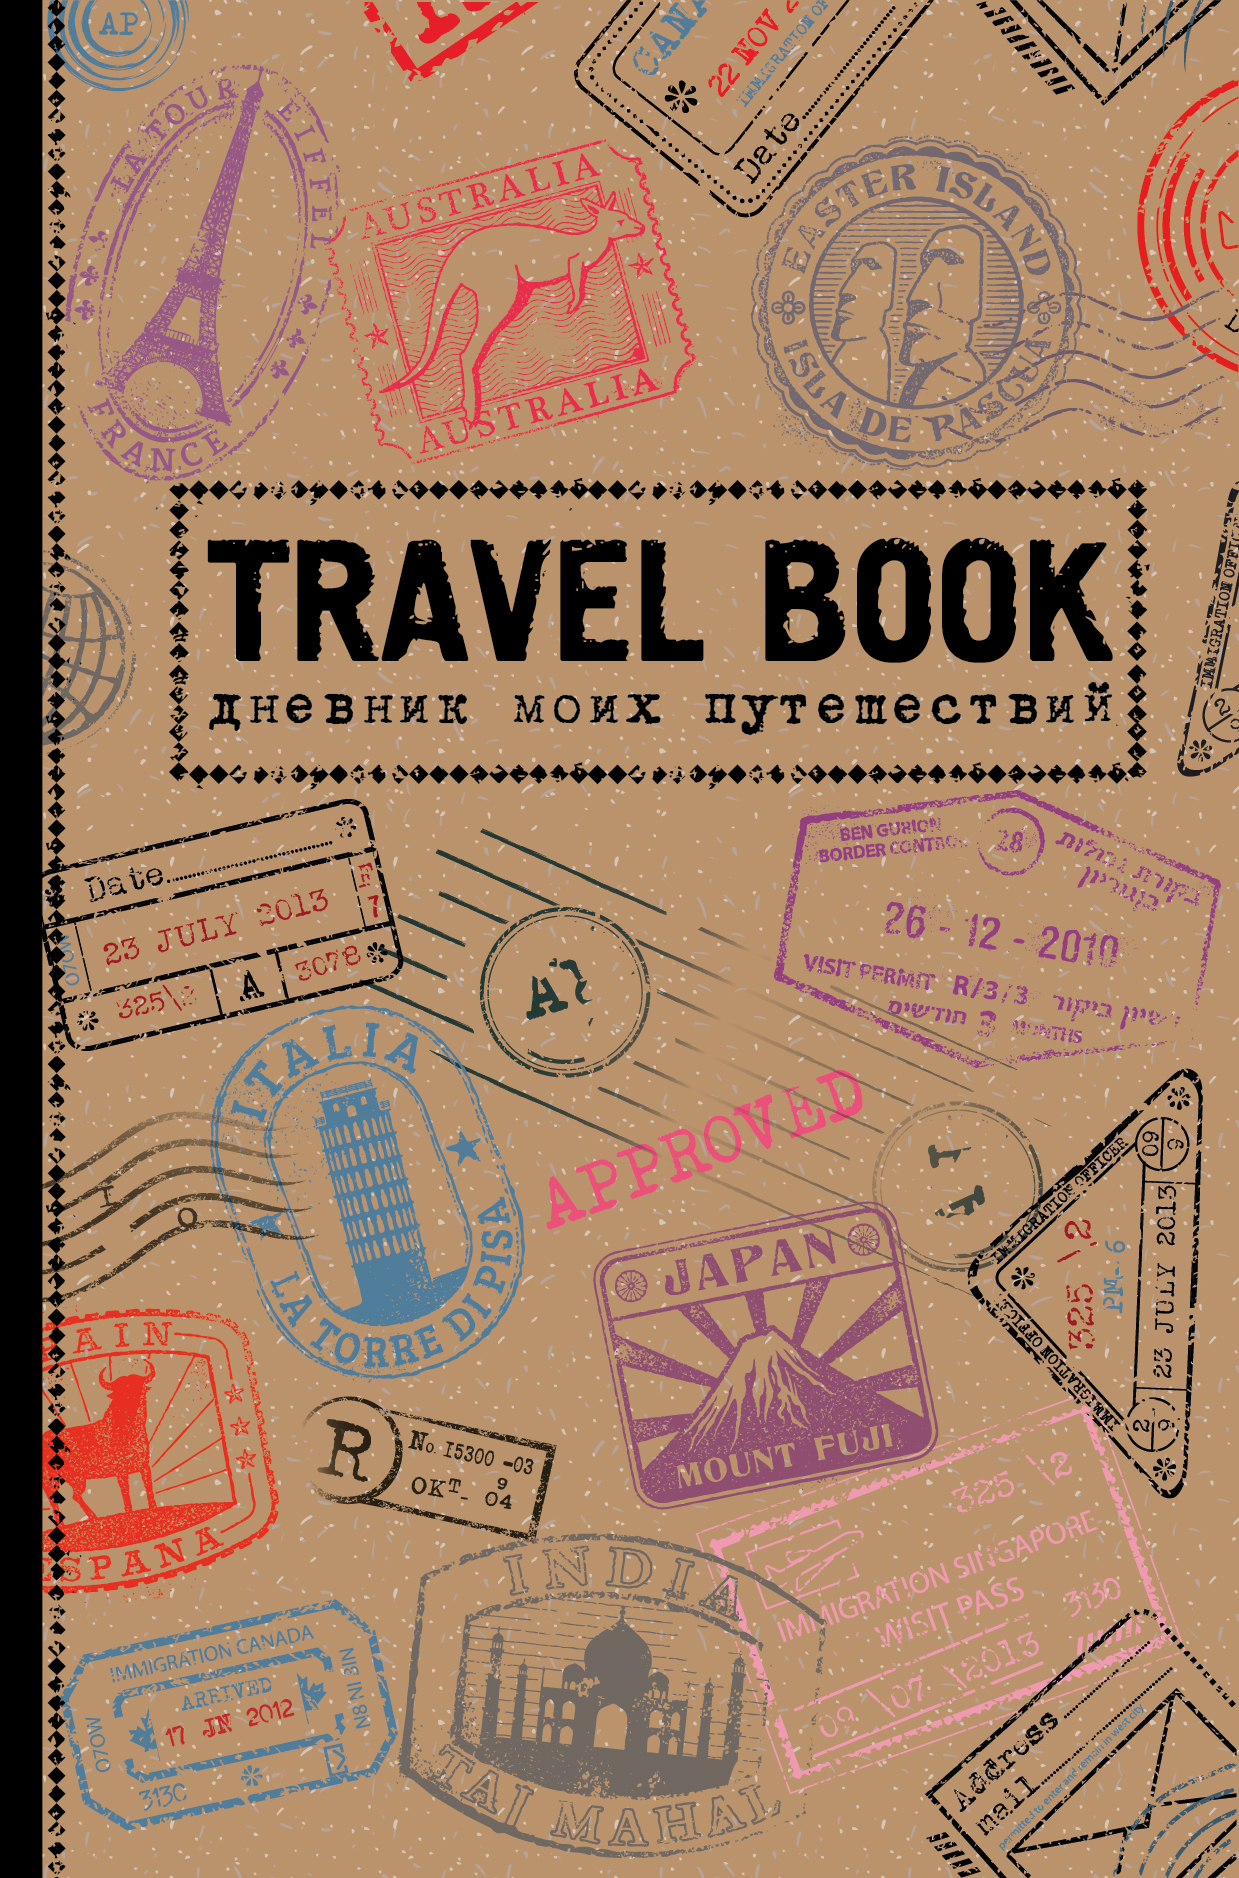 Travel Book. Дневник моих путешествий - страница 0